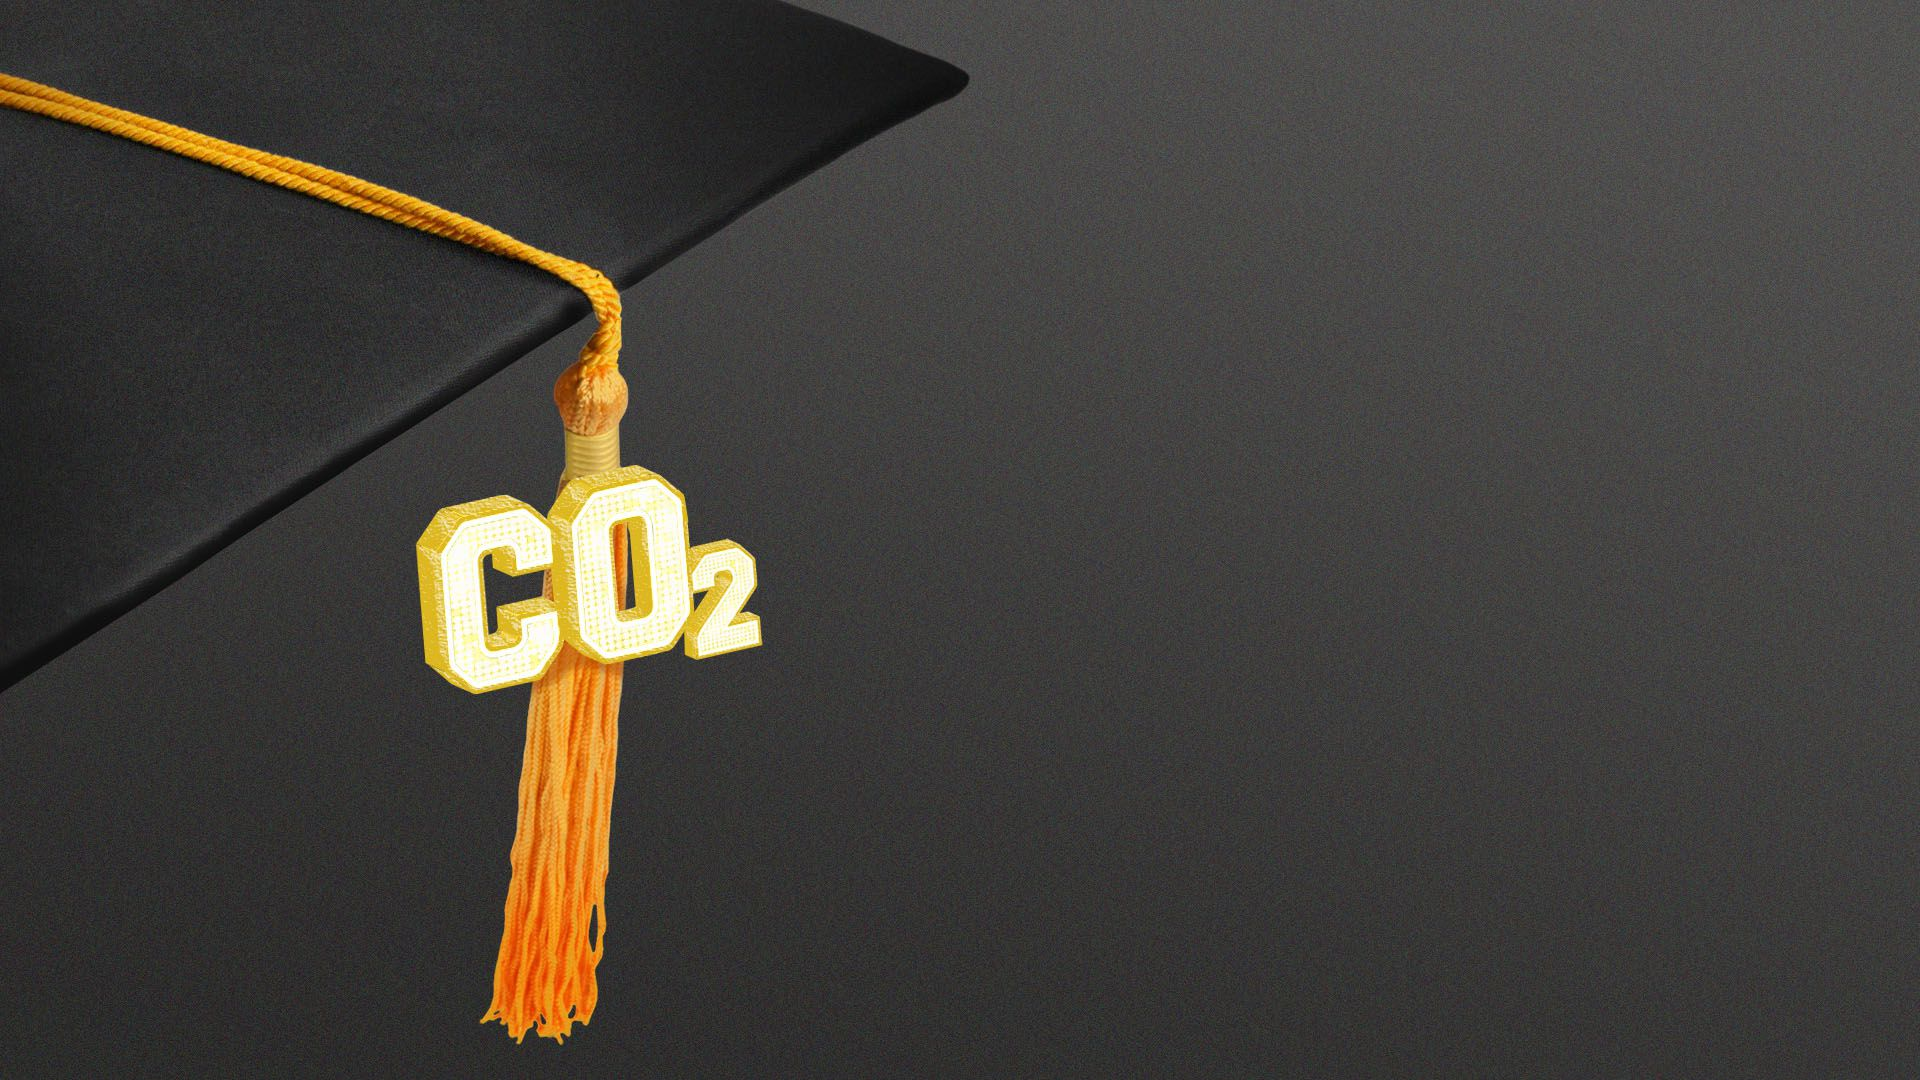 Illustration of a graduation cap tassel with CO2 on it